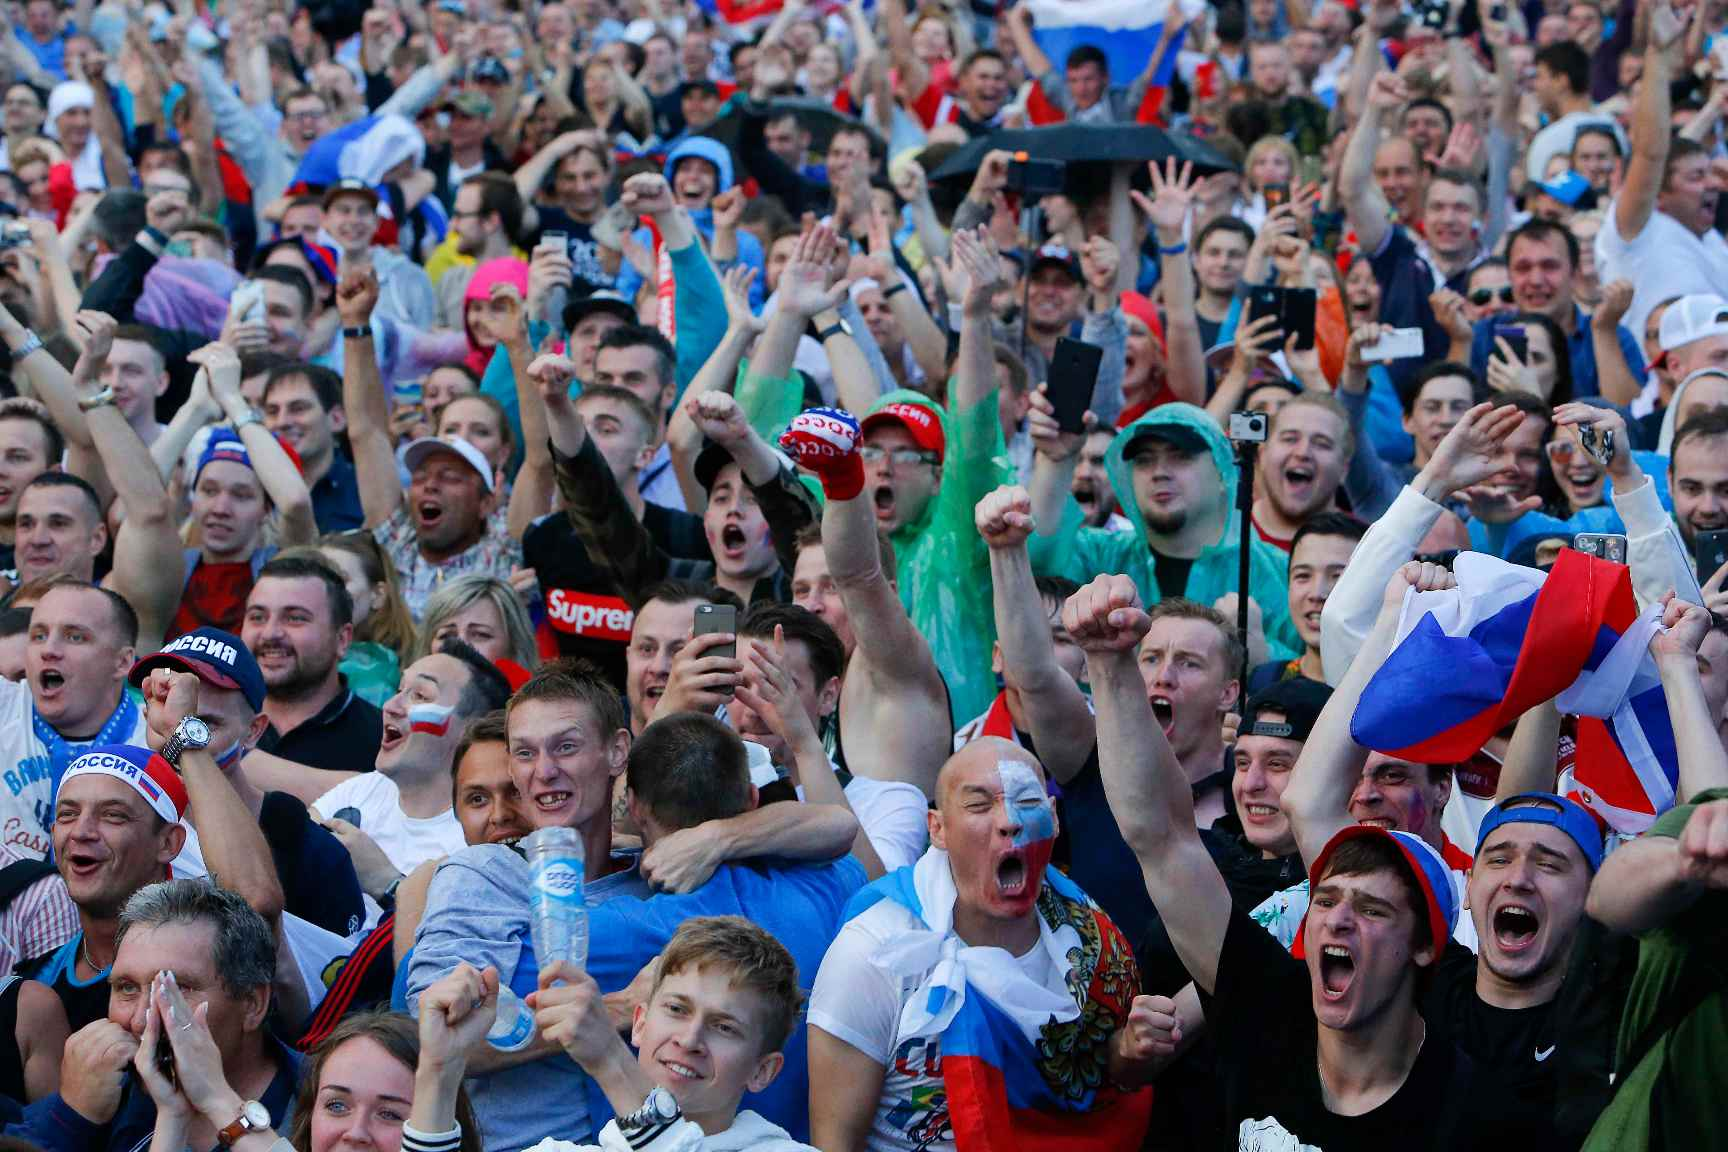 Soccer Football - World Cup - Round of 16 - Spain vs Russia - Moscow, Russia - July 1, 2018. Russian supporters react while watching the match in a fan zone. REUTERS/Sergei Karpukhin